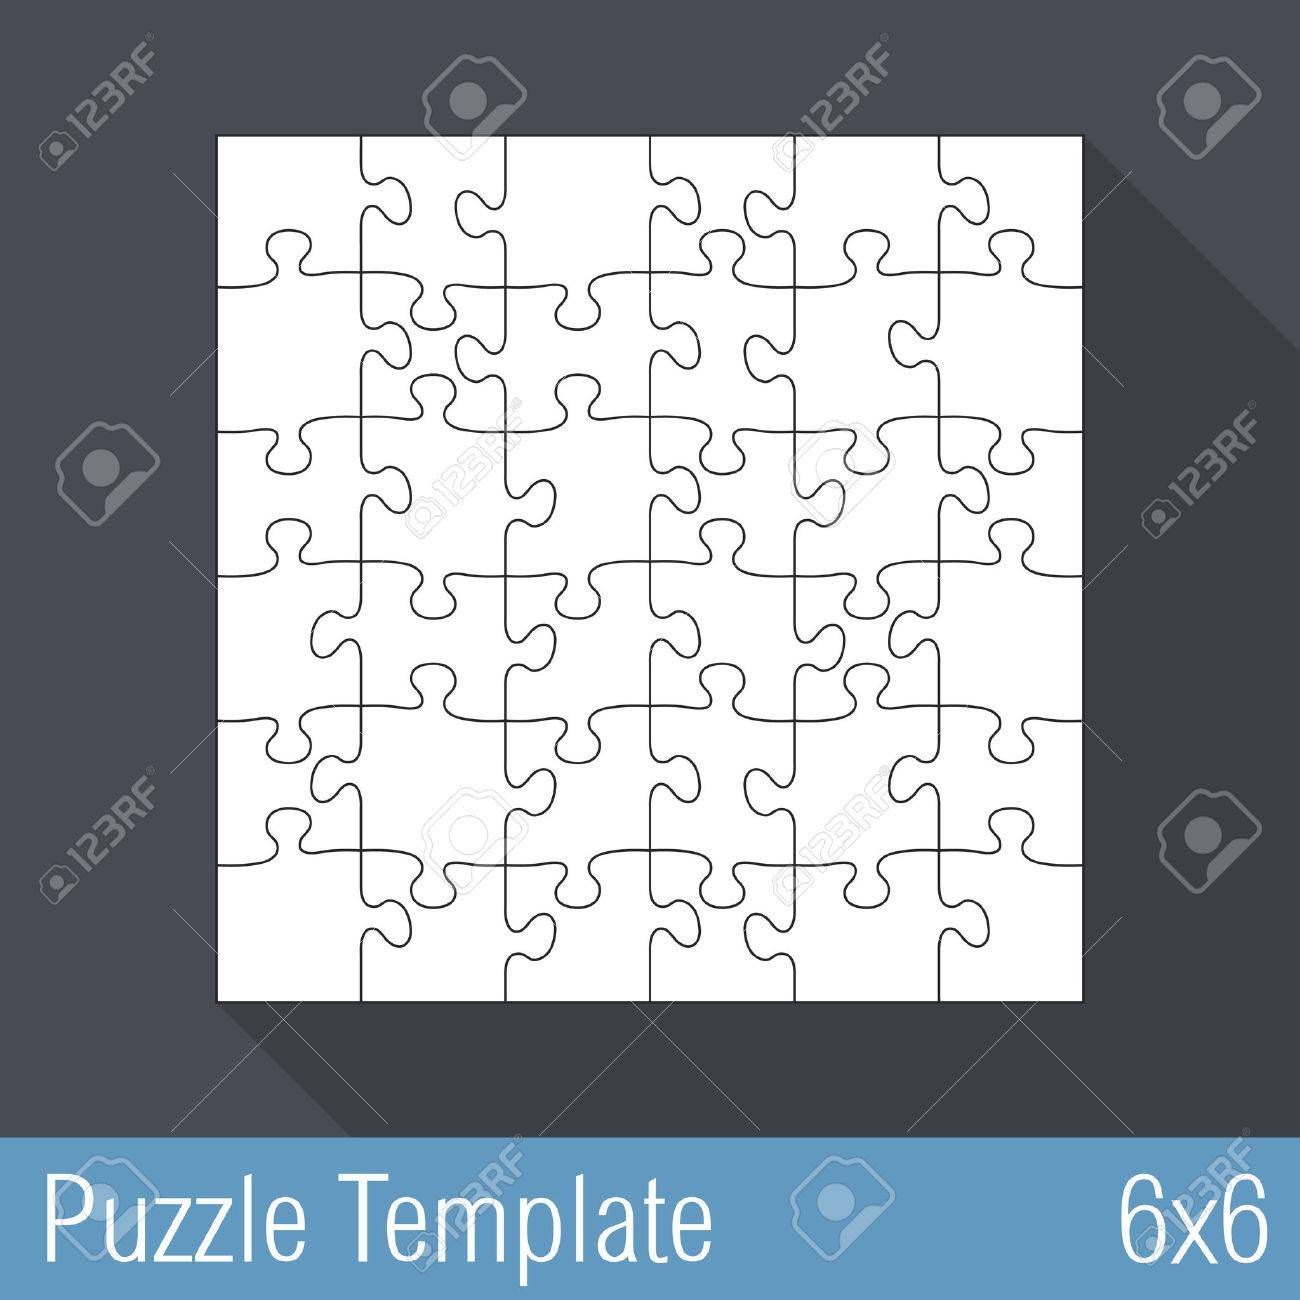 Jigsaw puzzle template 36 pieces 6x6 royalty free cliparts jigsaw puzzle template 36 pieces 6x6 stock vector 28031081 pronofoot35fo Choice Image